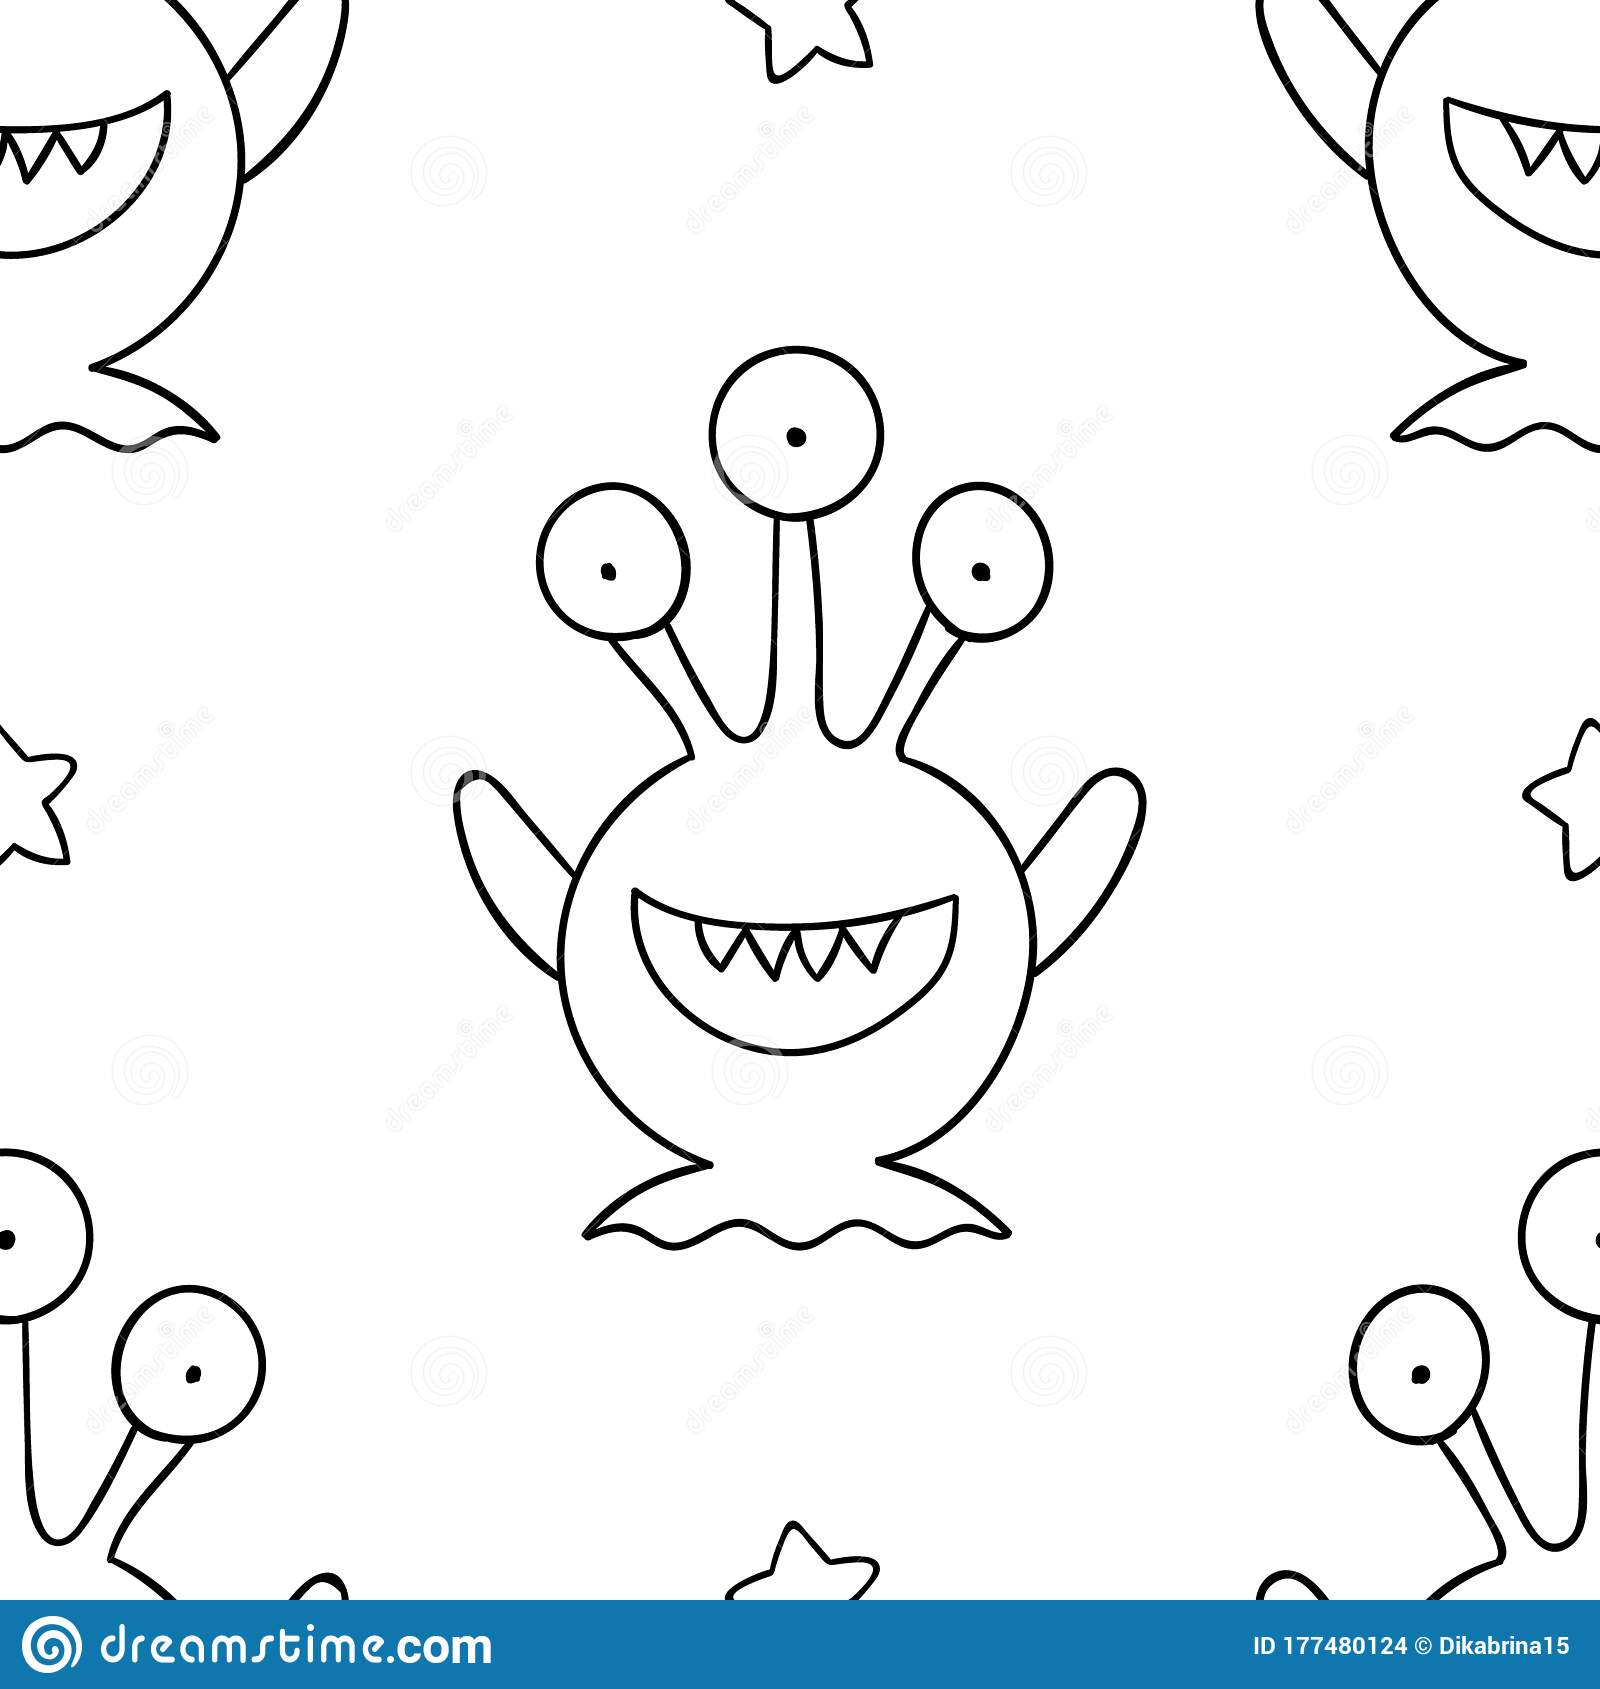 Monster Coloring Pages: 4 Cute and Silly Monsters for Kids (Free ... | 1689x1600